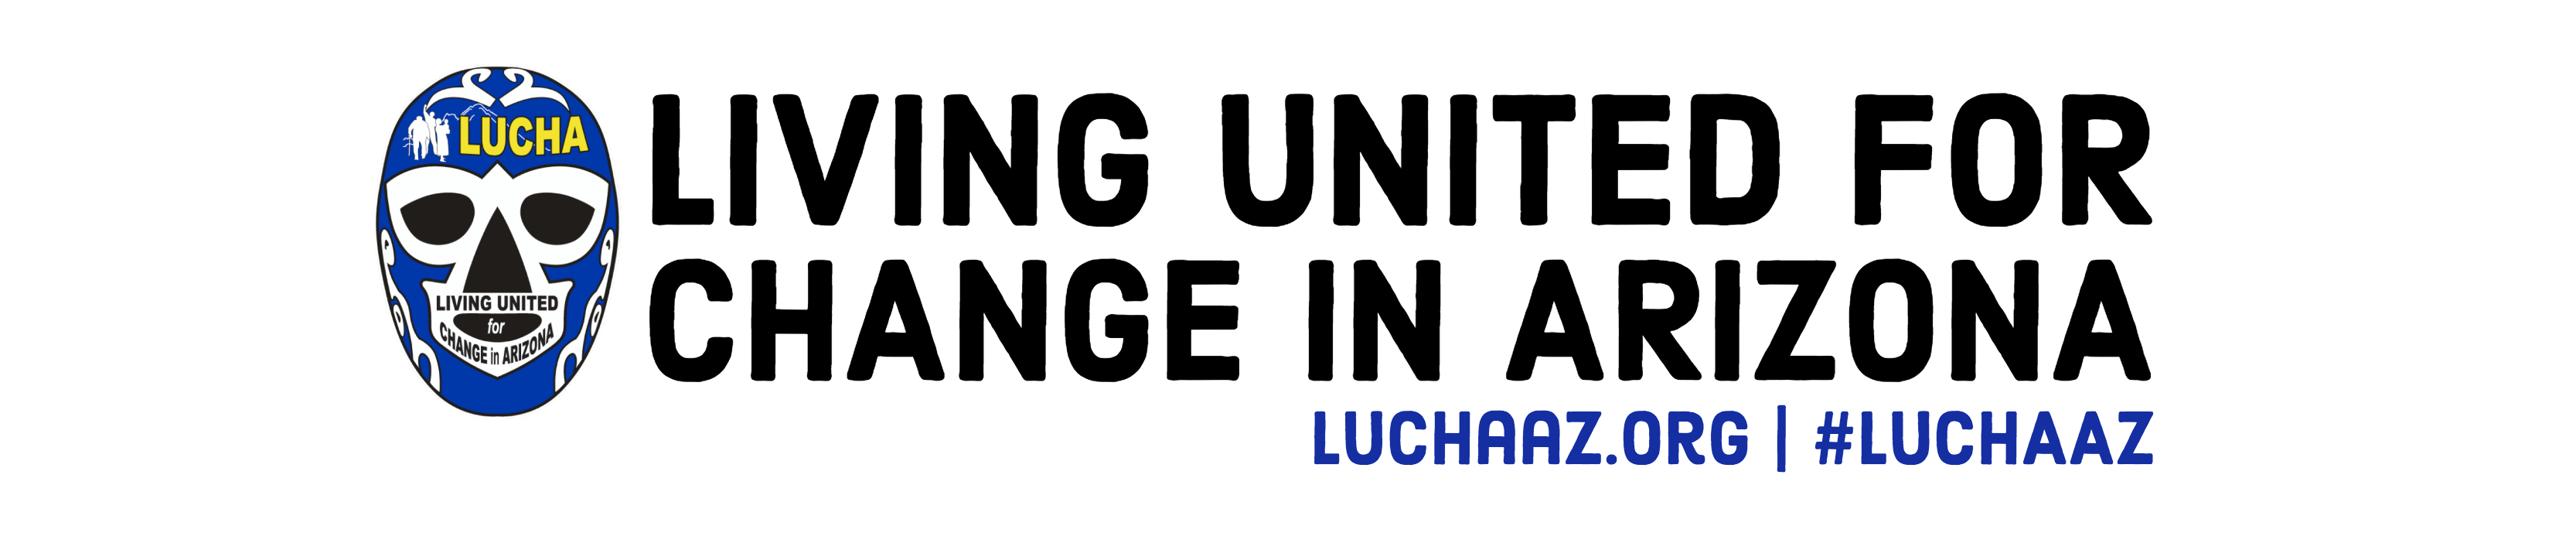 Living United for Change in Arizona